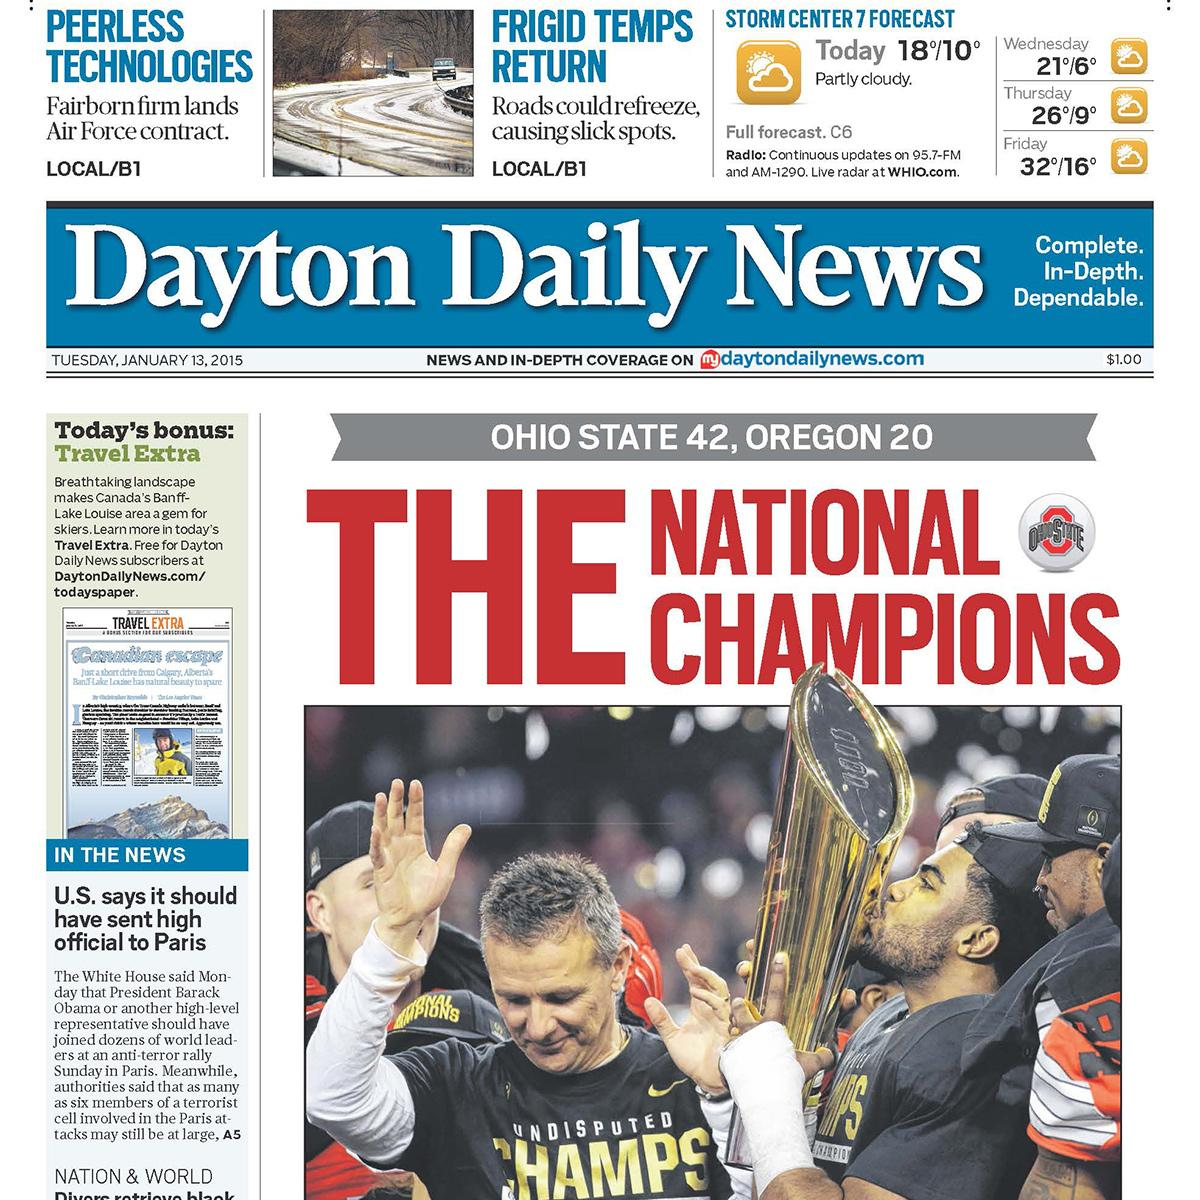 This morning's paper is a MUST READ for any @OhioStAthletics fan! Get your posters & papers at http://t.co/okWDA1jy9P http://t.co/MLKlMsxTzJ